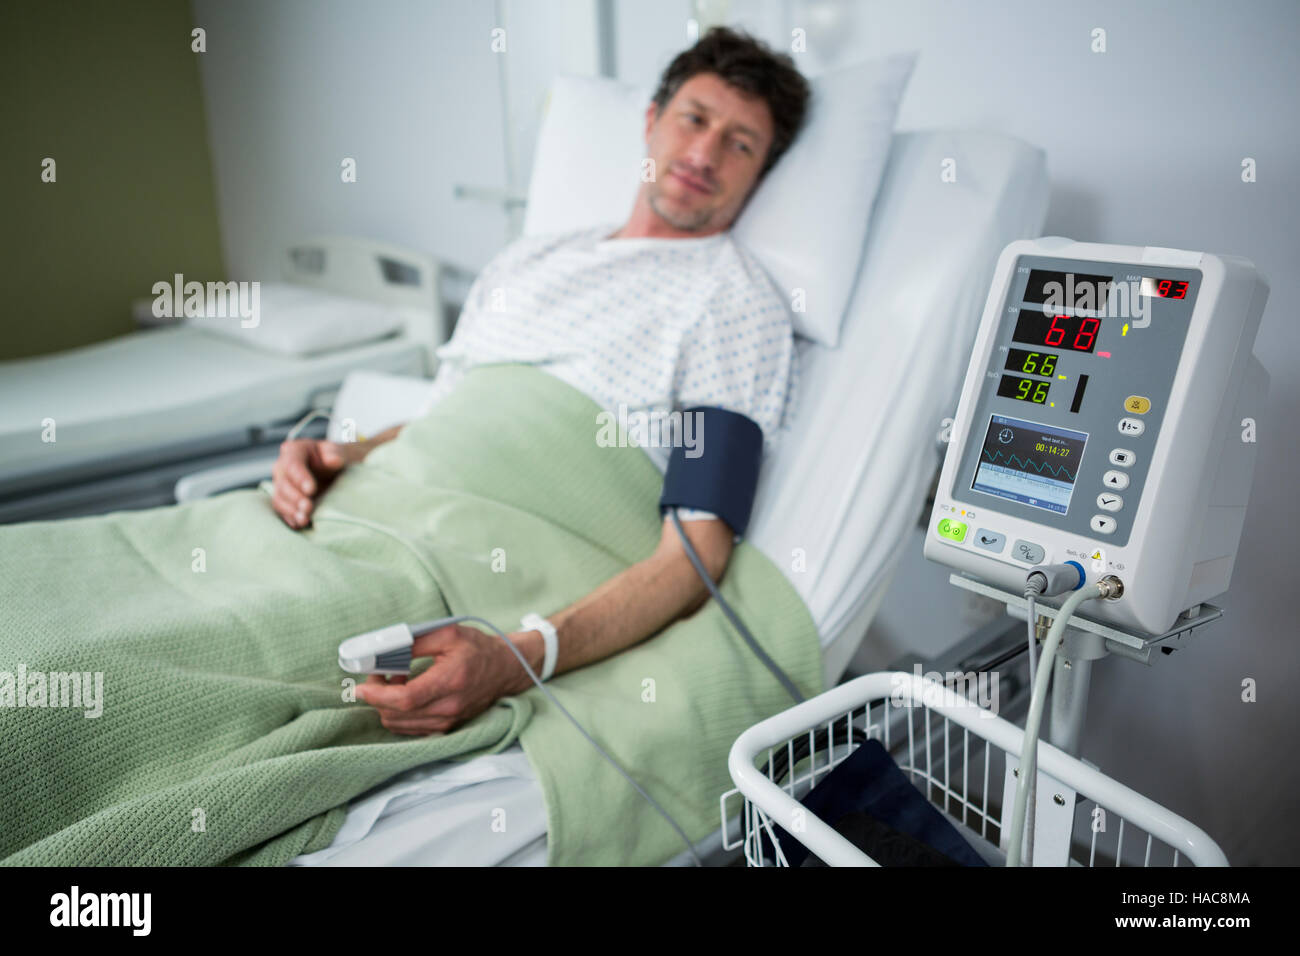 Pulse Oximeter Stock Photos Amp Pulse Oximeter Stock Images